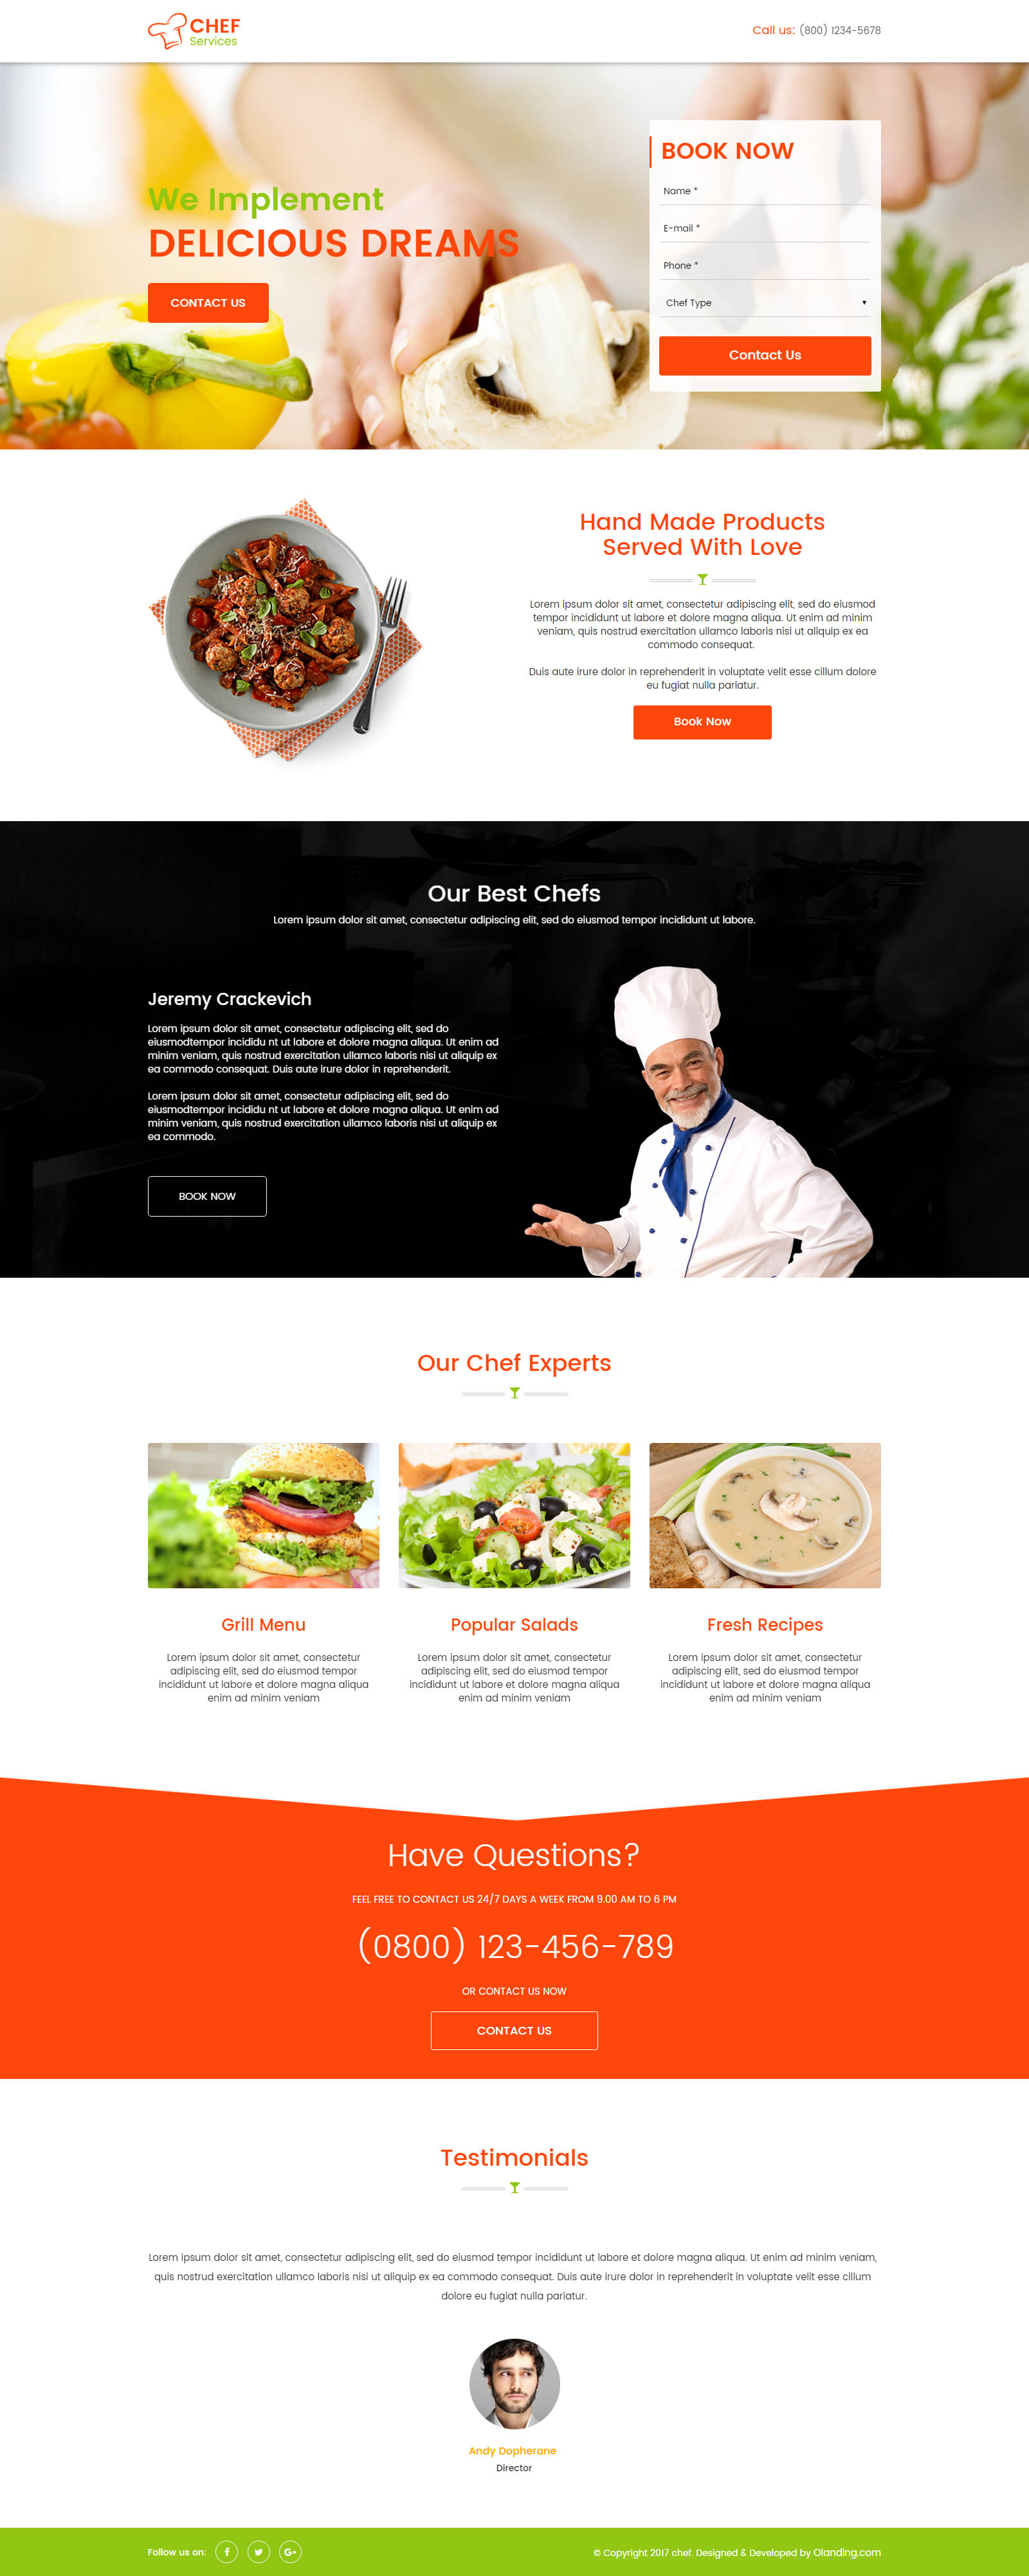 seo friendly chef landing page design template - olanding